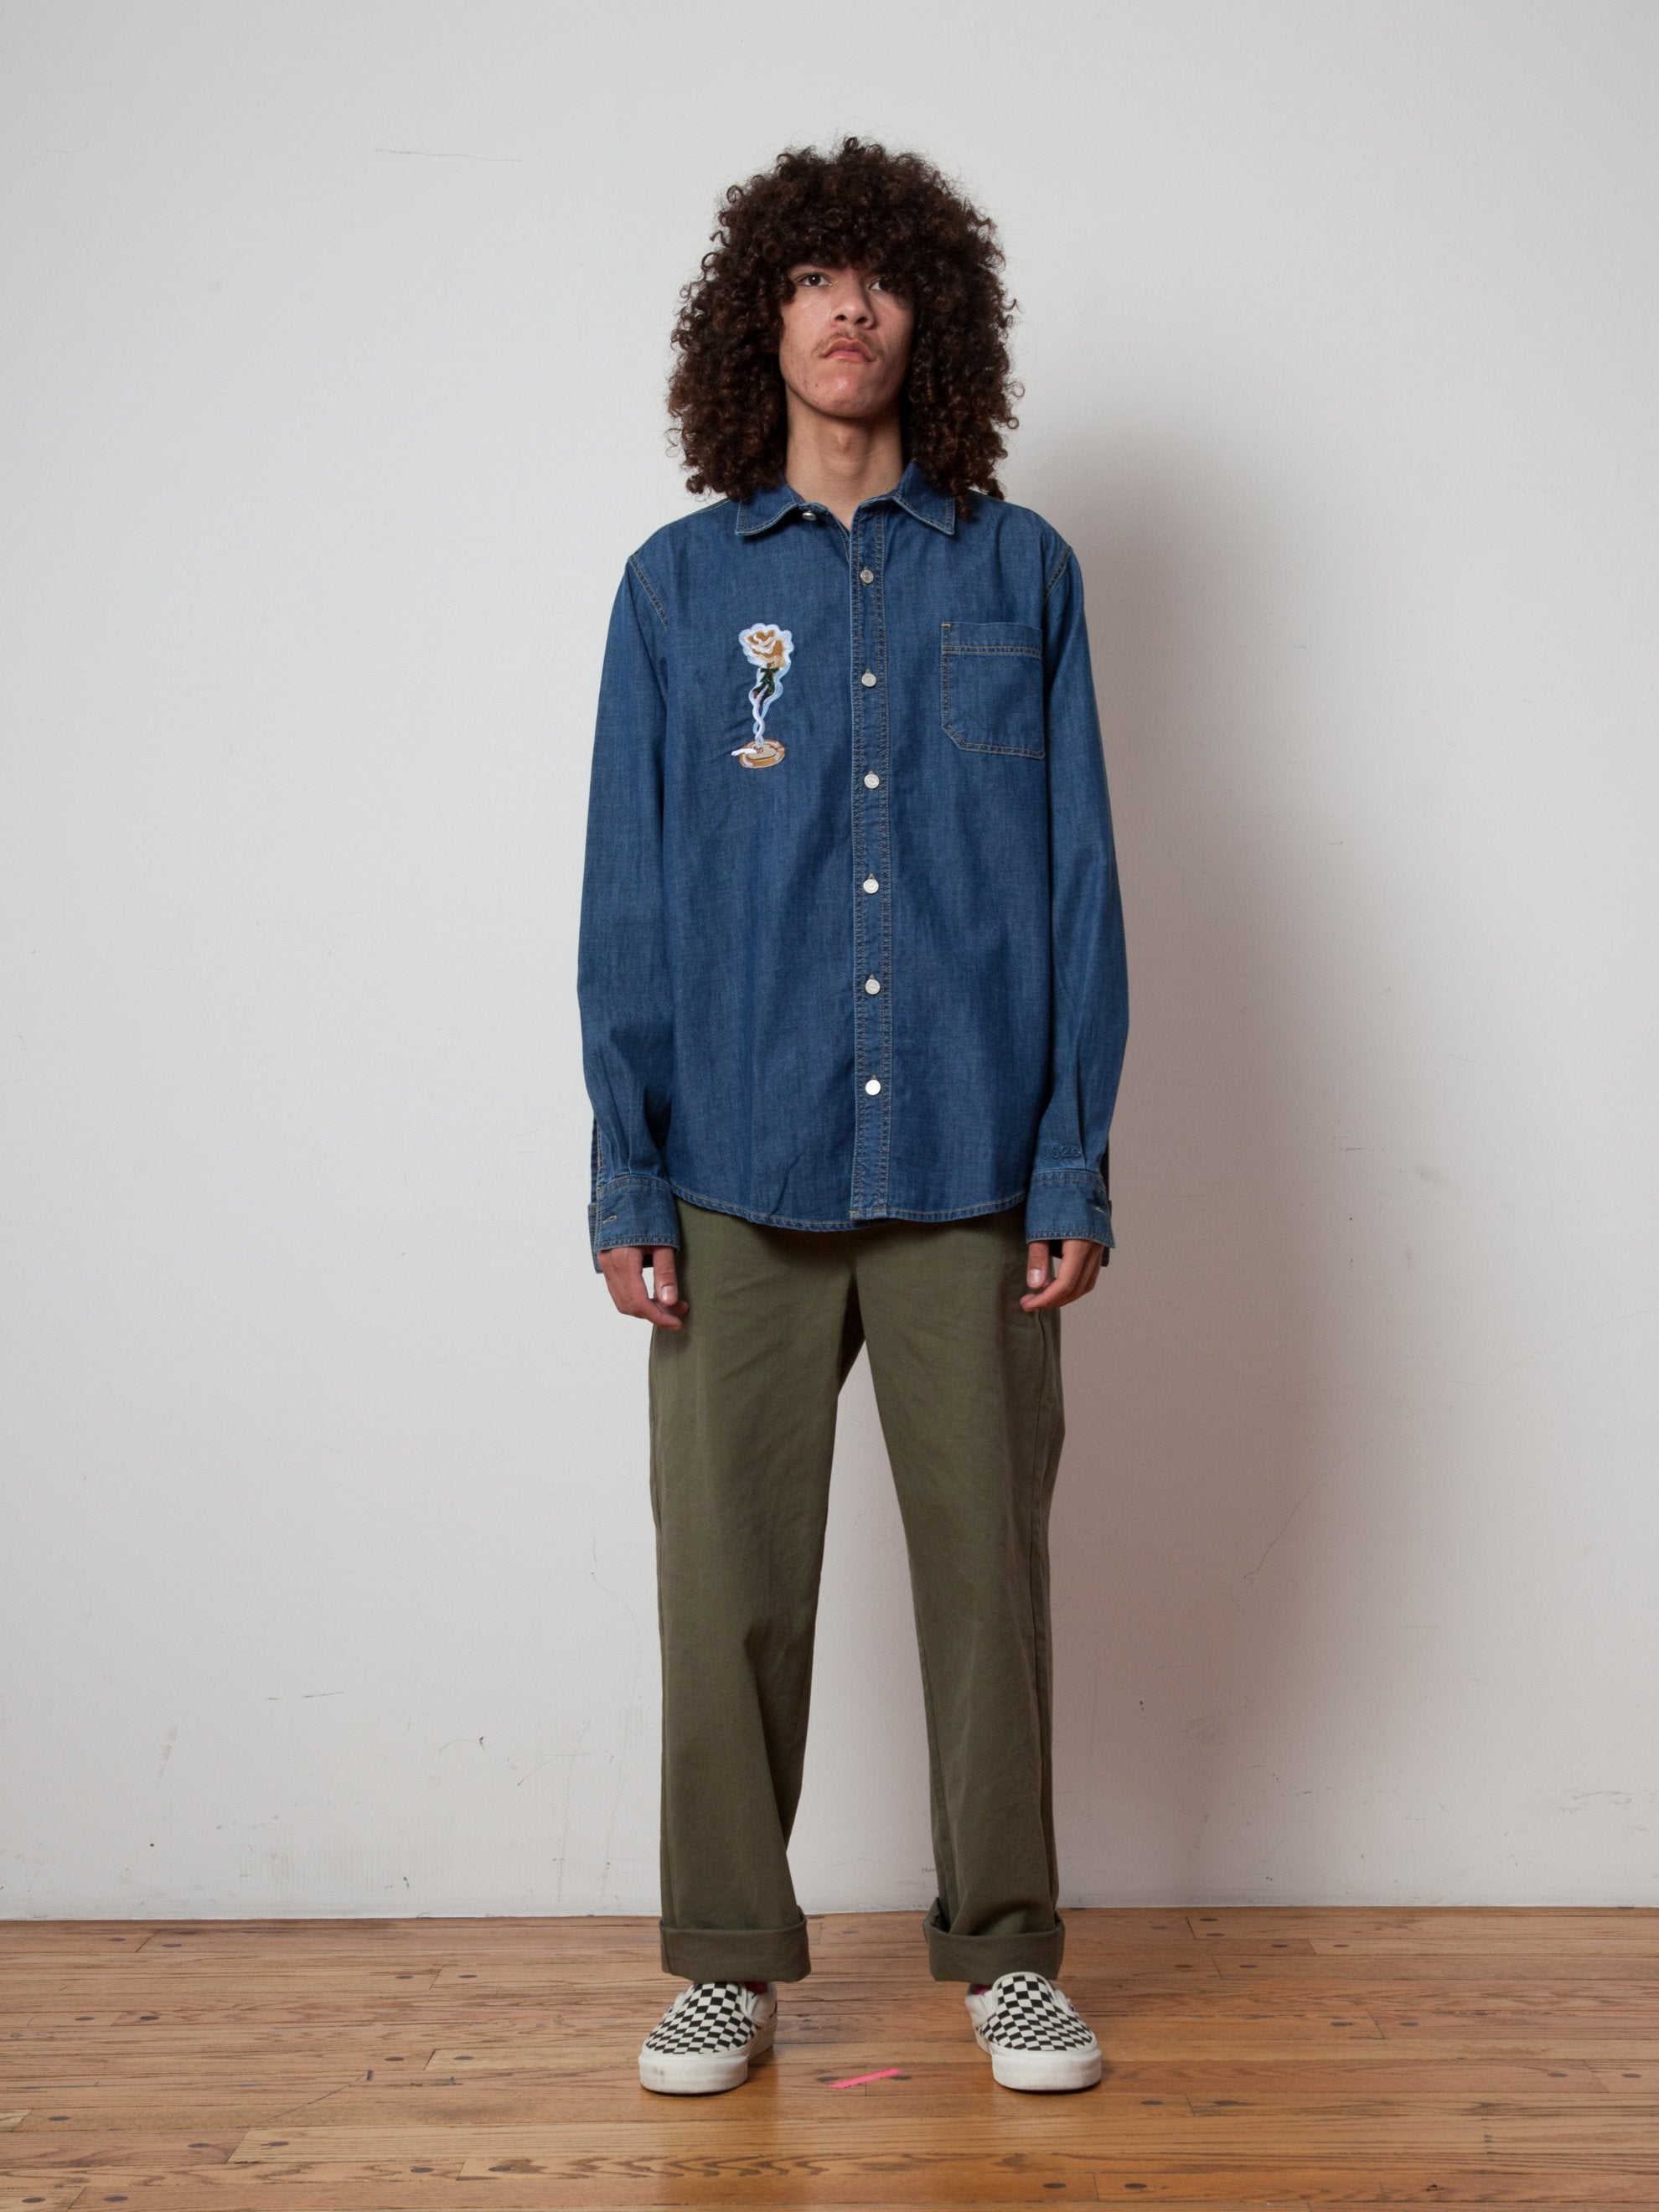 M Smoker's Collection Jean Shirt 2